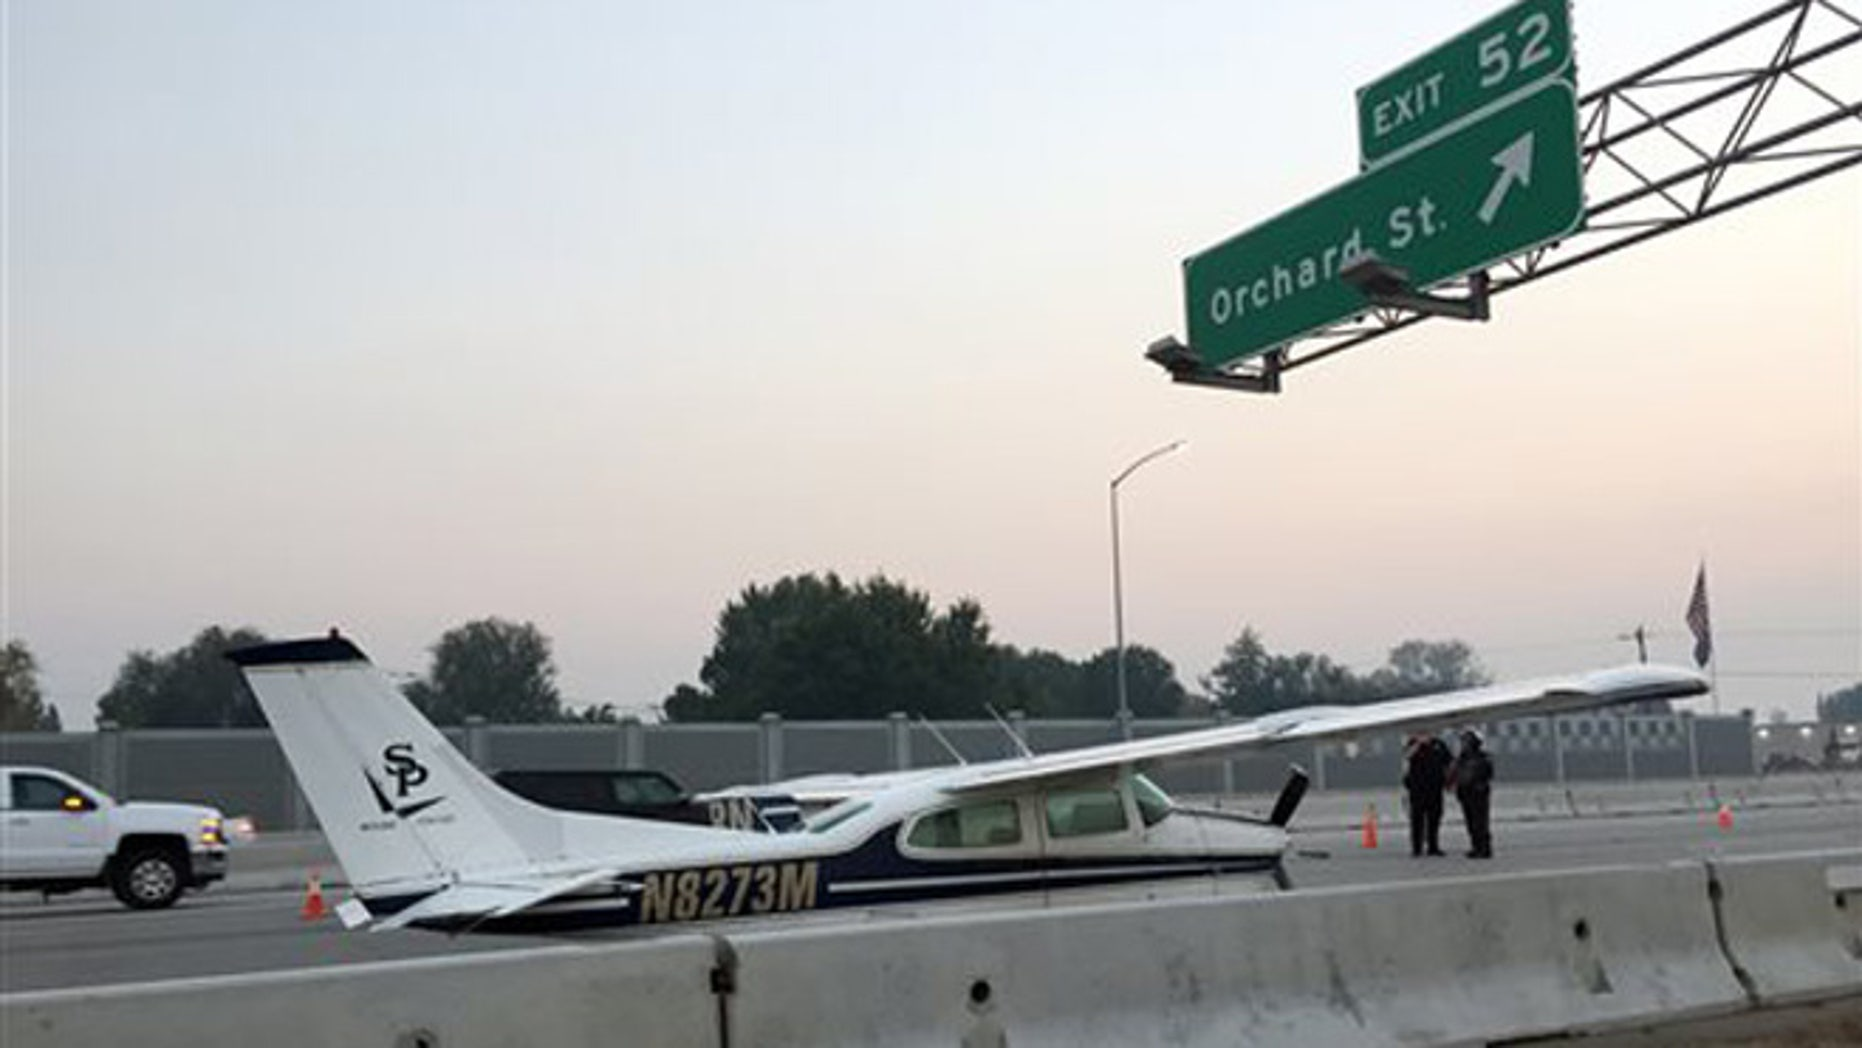 Oct. 13, 2015: A small plane makes an emergency landing on I-84 in Boise, Idaho.